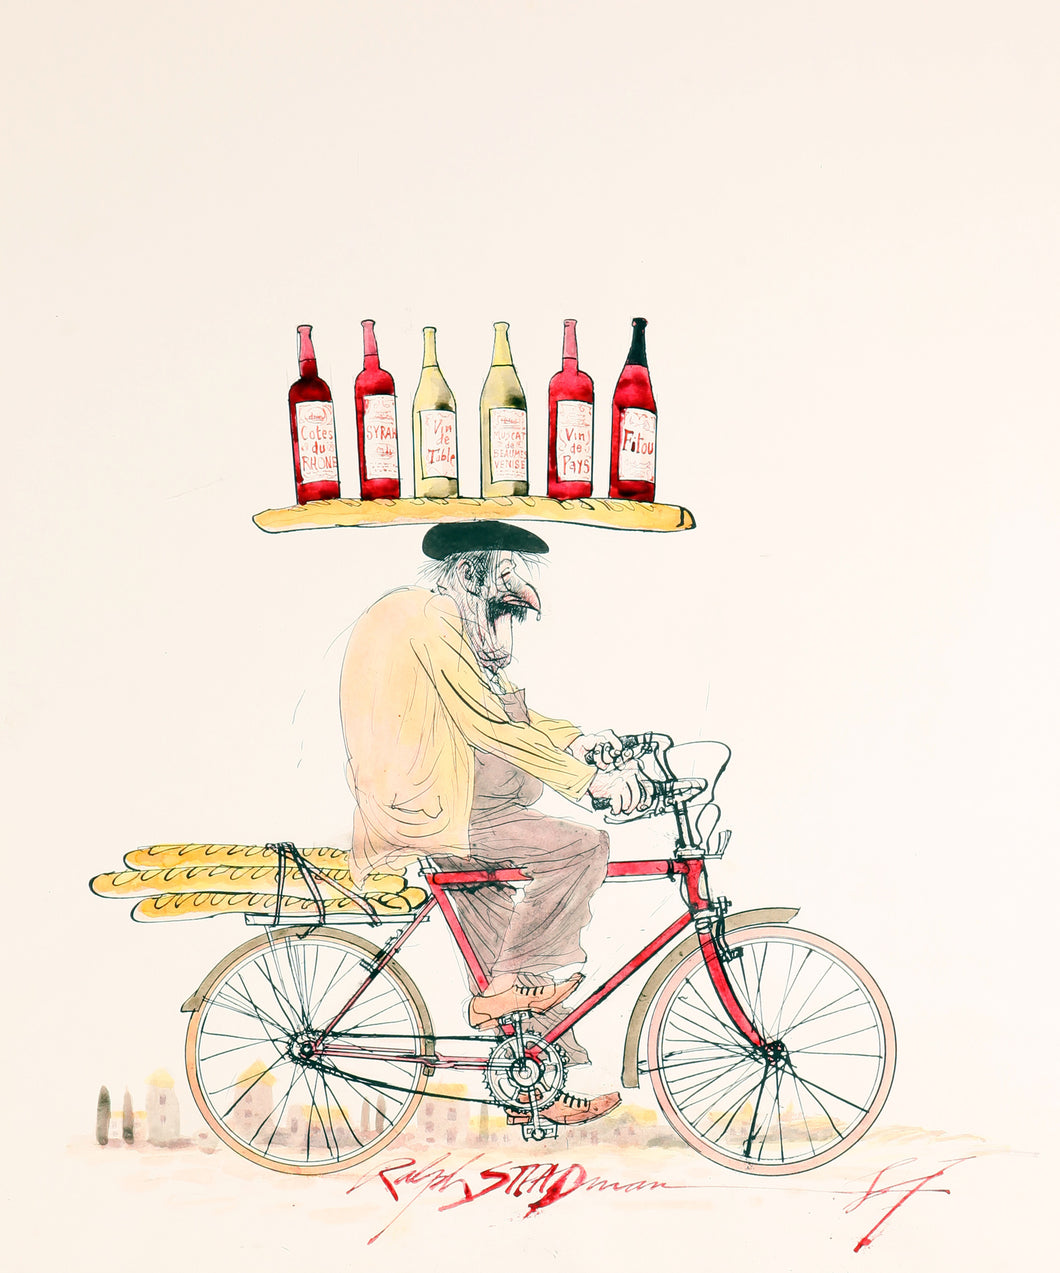 Ralph Steadman Signed Frenchman on a Bike Wine Print